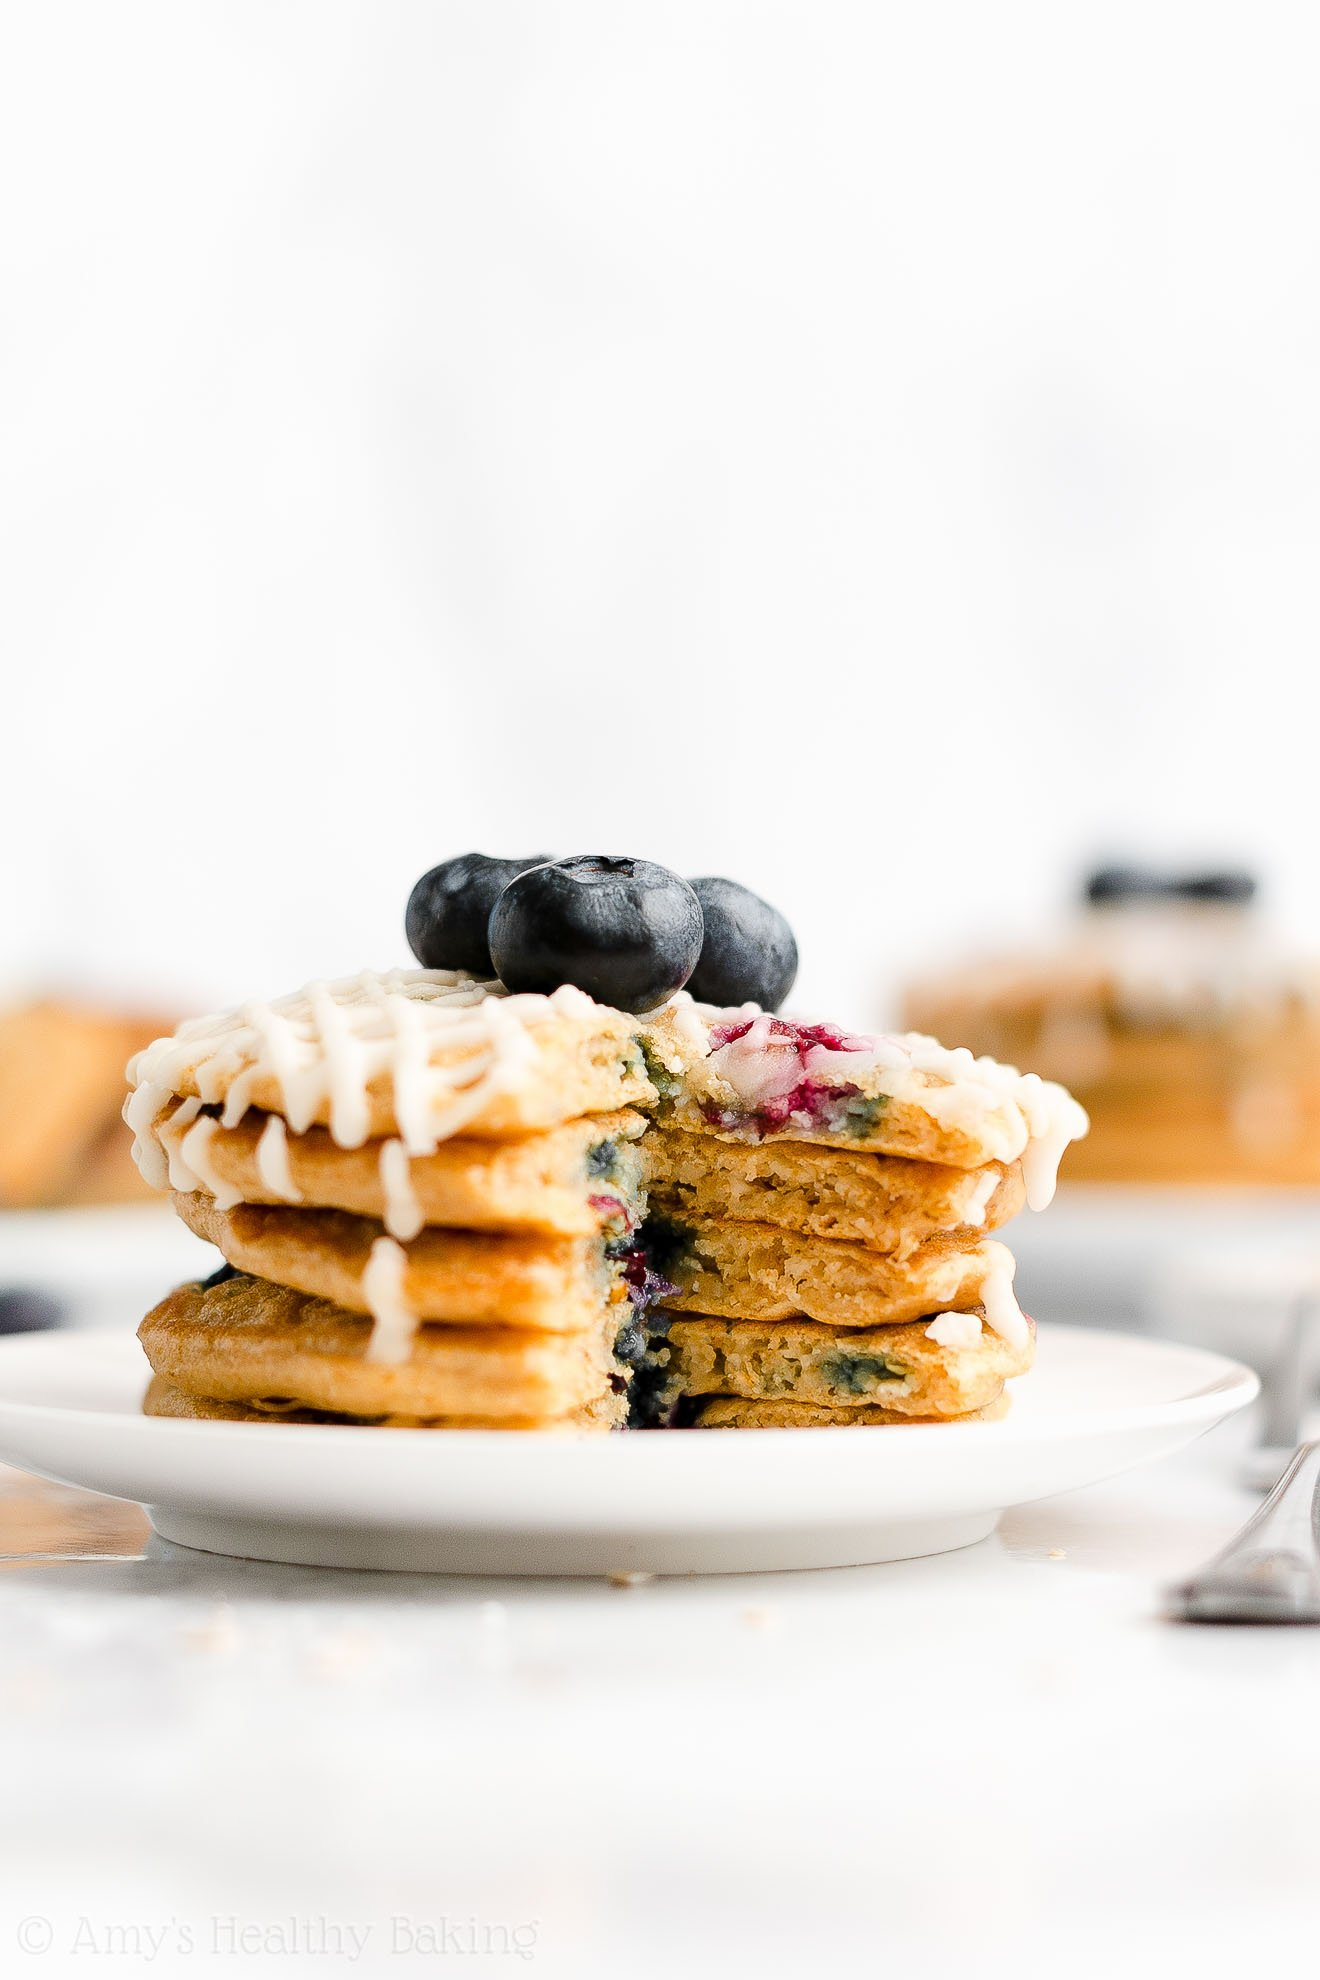 Best Easy Healthy Low Calorie Fluffy Greek Yogurt Blueberry Oatmeal Pancakes